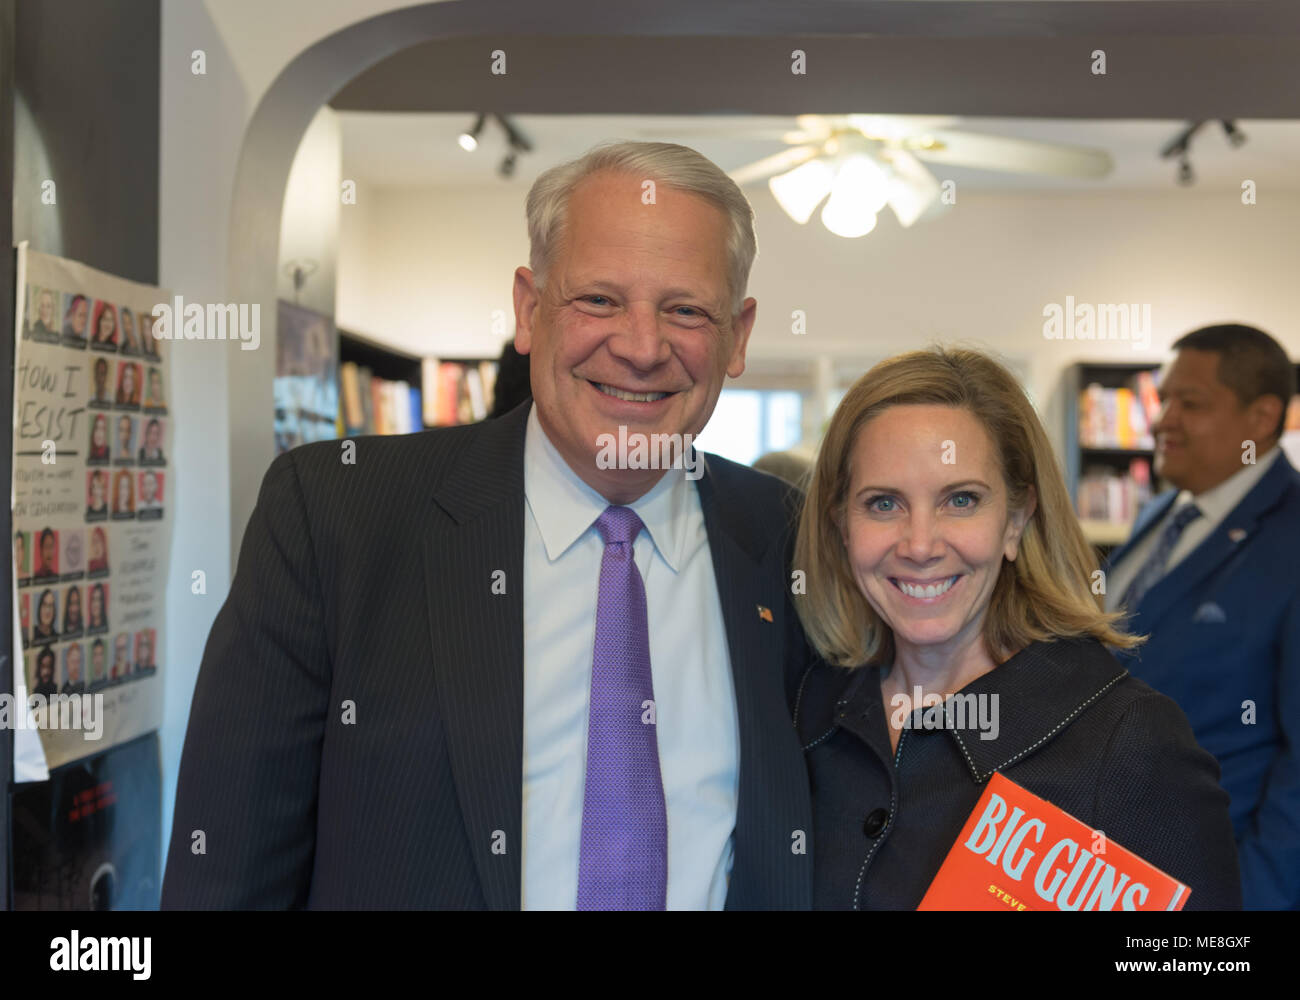 Rockville Centre, New York, USA. 20th Apr, 2018. L-R, Rep. STEVE ISRAEL and Town of Hempstead Supervisor LAURA GILLEN pose for photo at special event for Nassau County debut of the former Congressman's (NY - Dem) newest novel BIG GUNS - a satire of the strong gun lobby, weak Congress, and a small Long Island town. The talk and book signing was held at Turn of the Corkscrew Books & Wine store. Credit: Ann Parry/ZUMA Wire/Alamy Live News - Stock Image